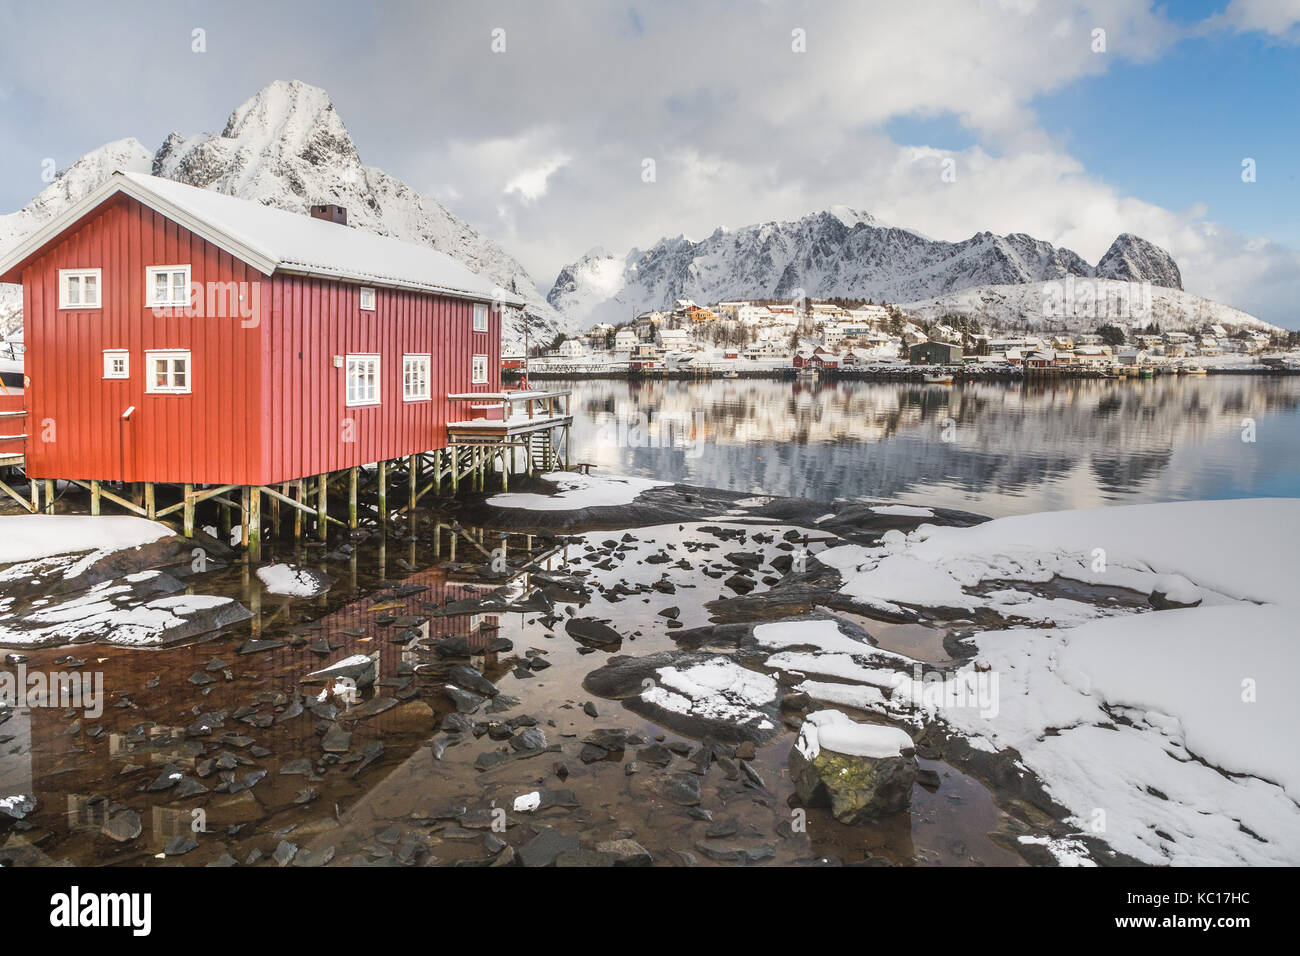 Traditional red Rorbu cabins in winter, Reine, Moskenesøy, Lofoten Islands, Norway Stock Photo